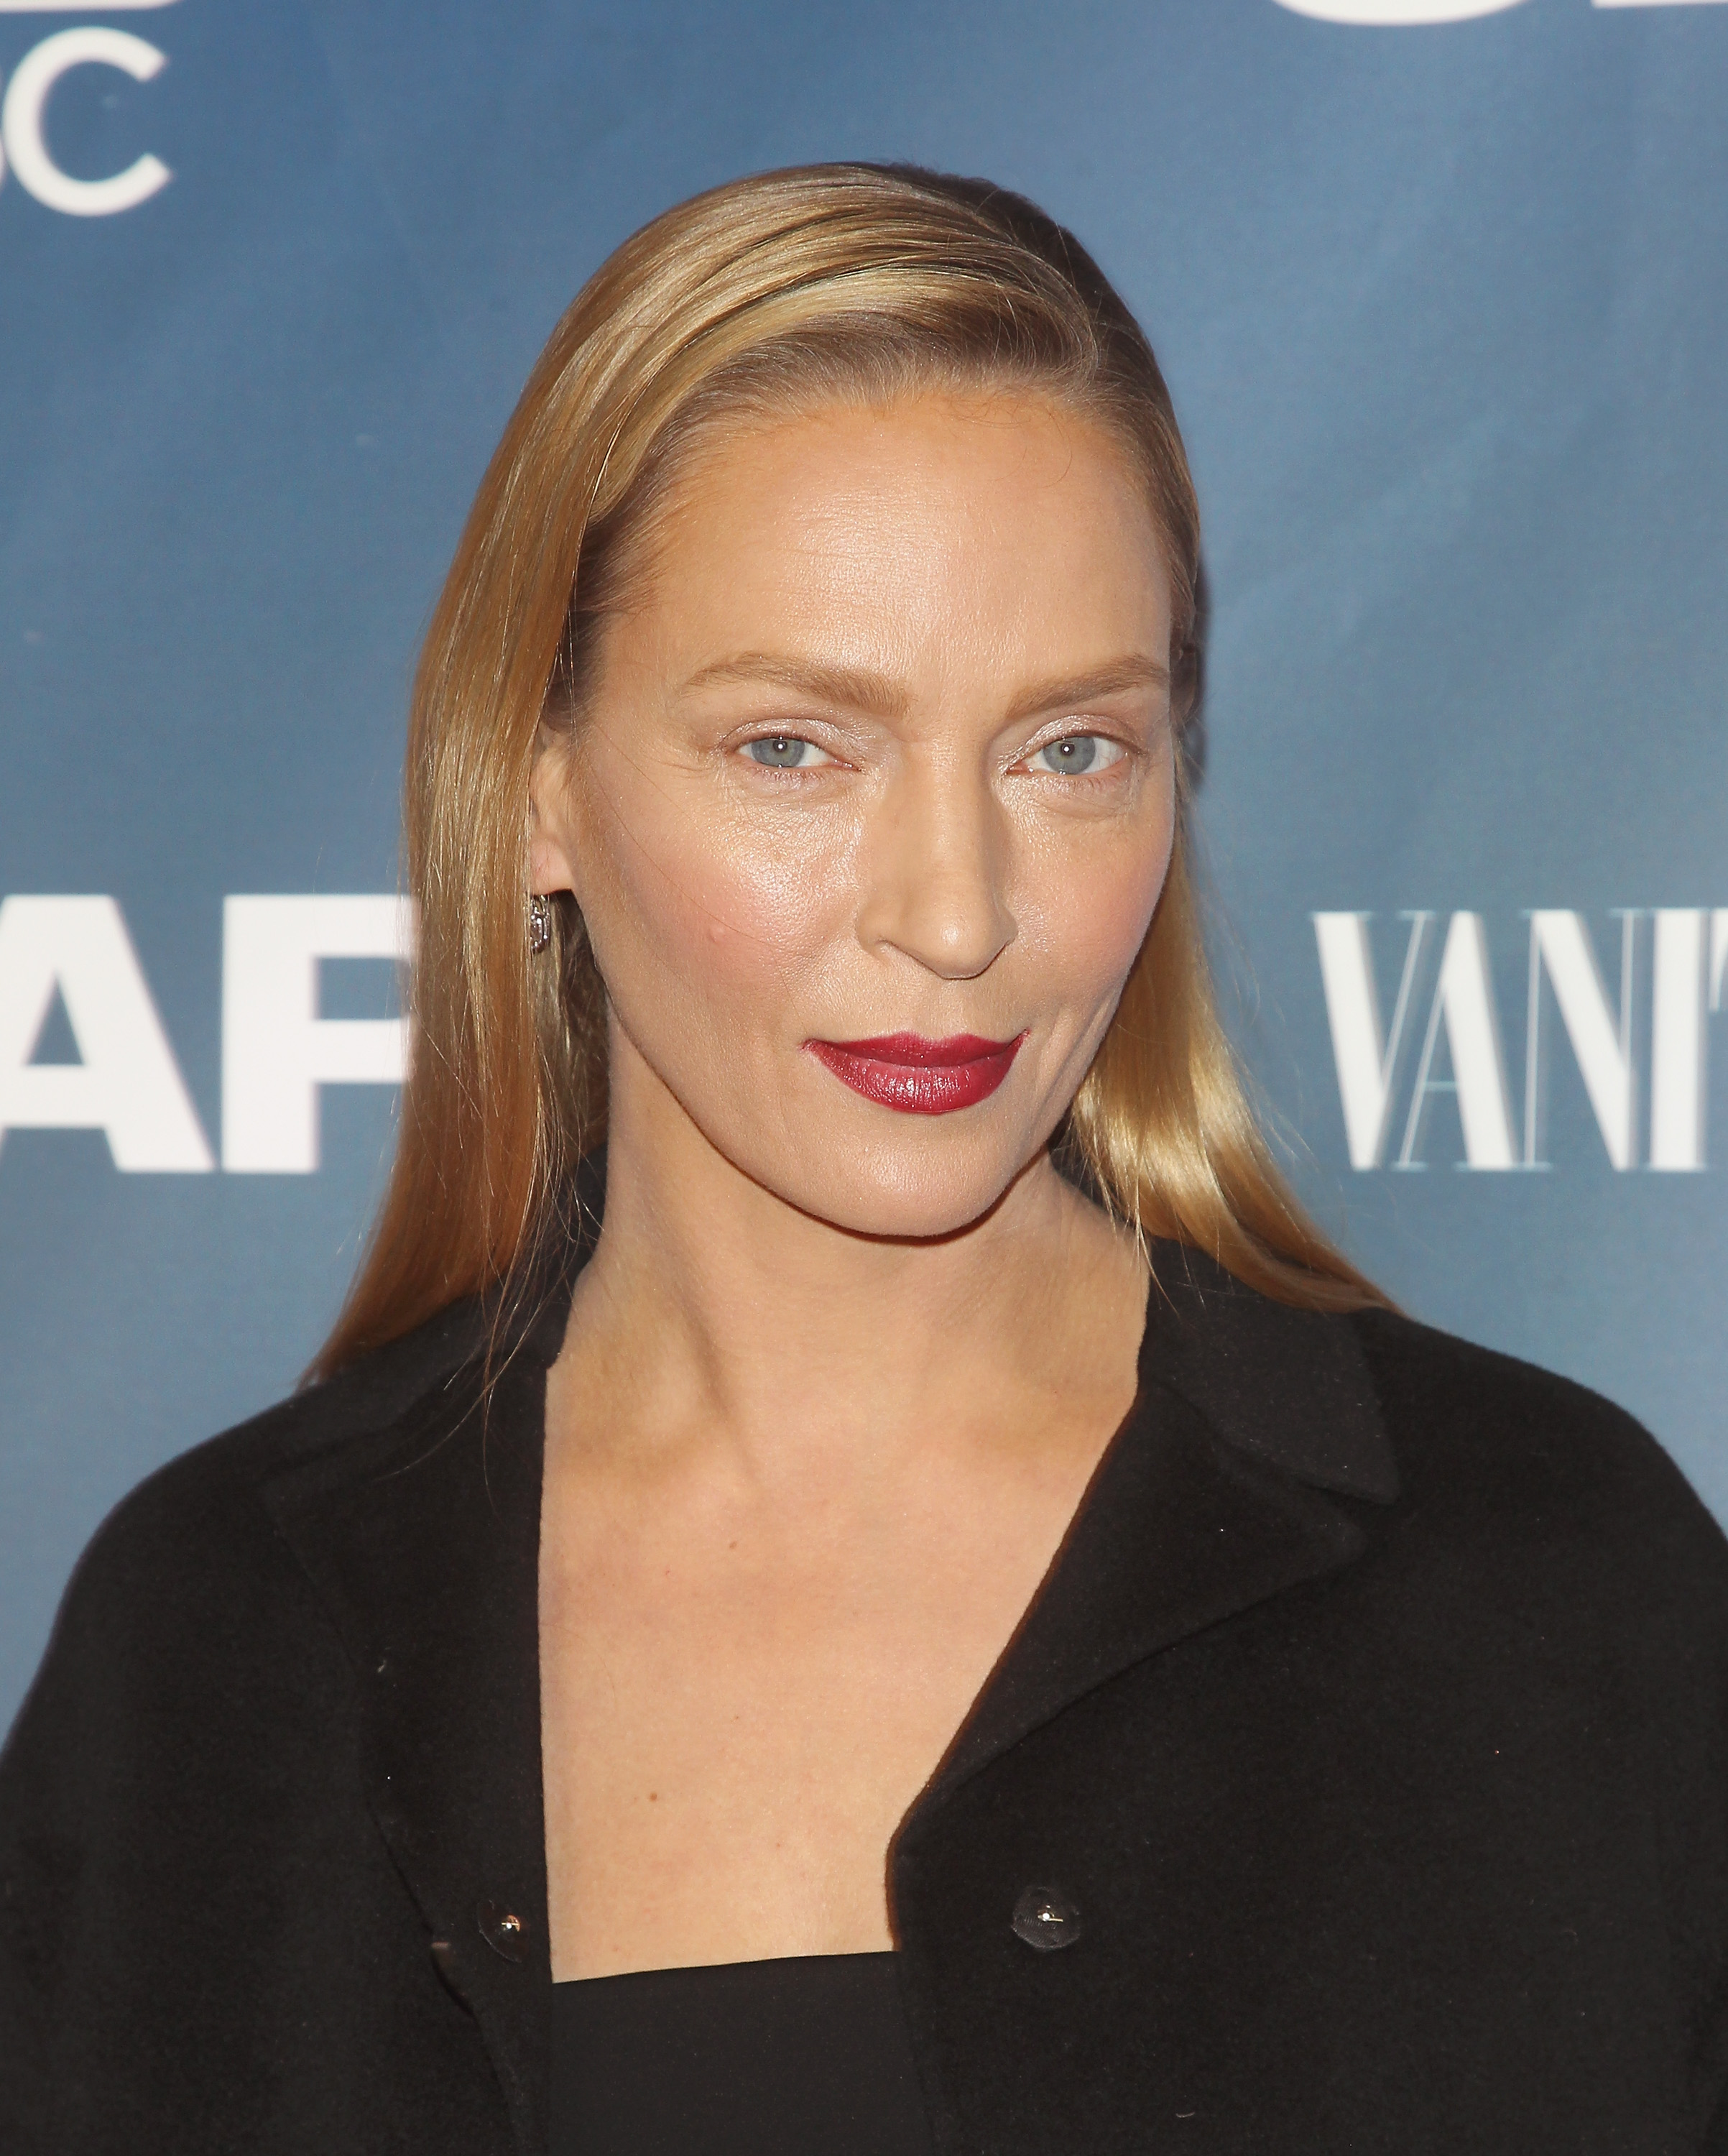 Actress Uma Thurman attends  The Slap  premiere party at The New Museum on Feb. 9, 2015 in New York City.